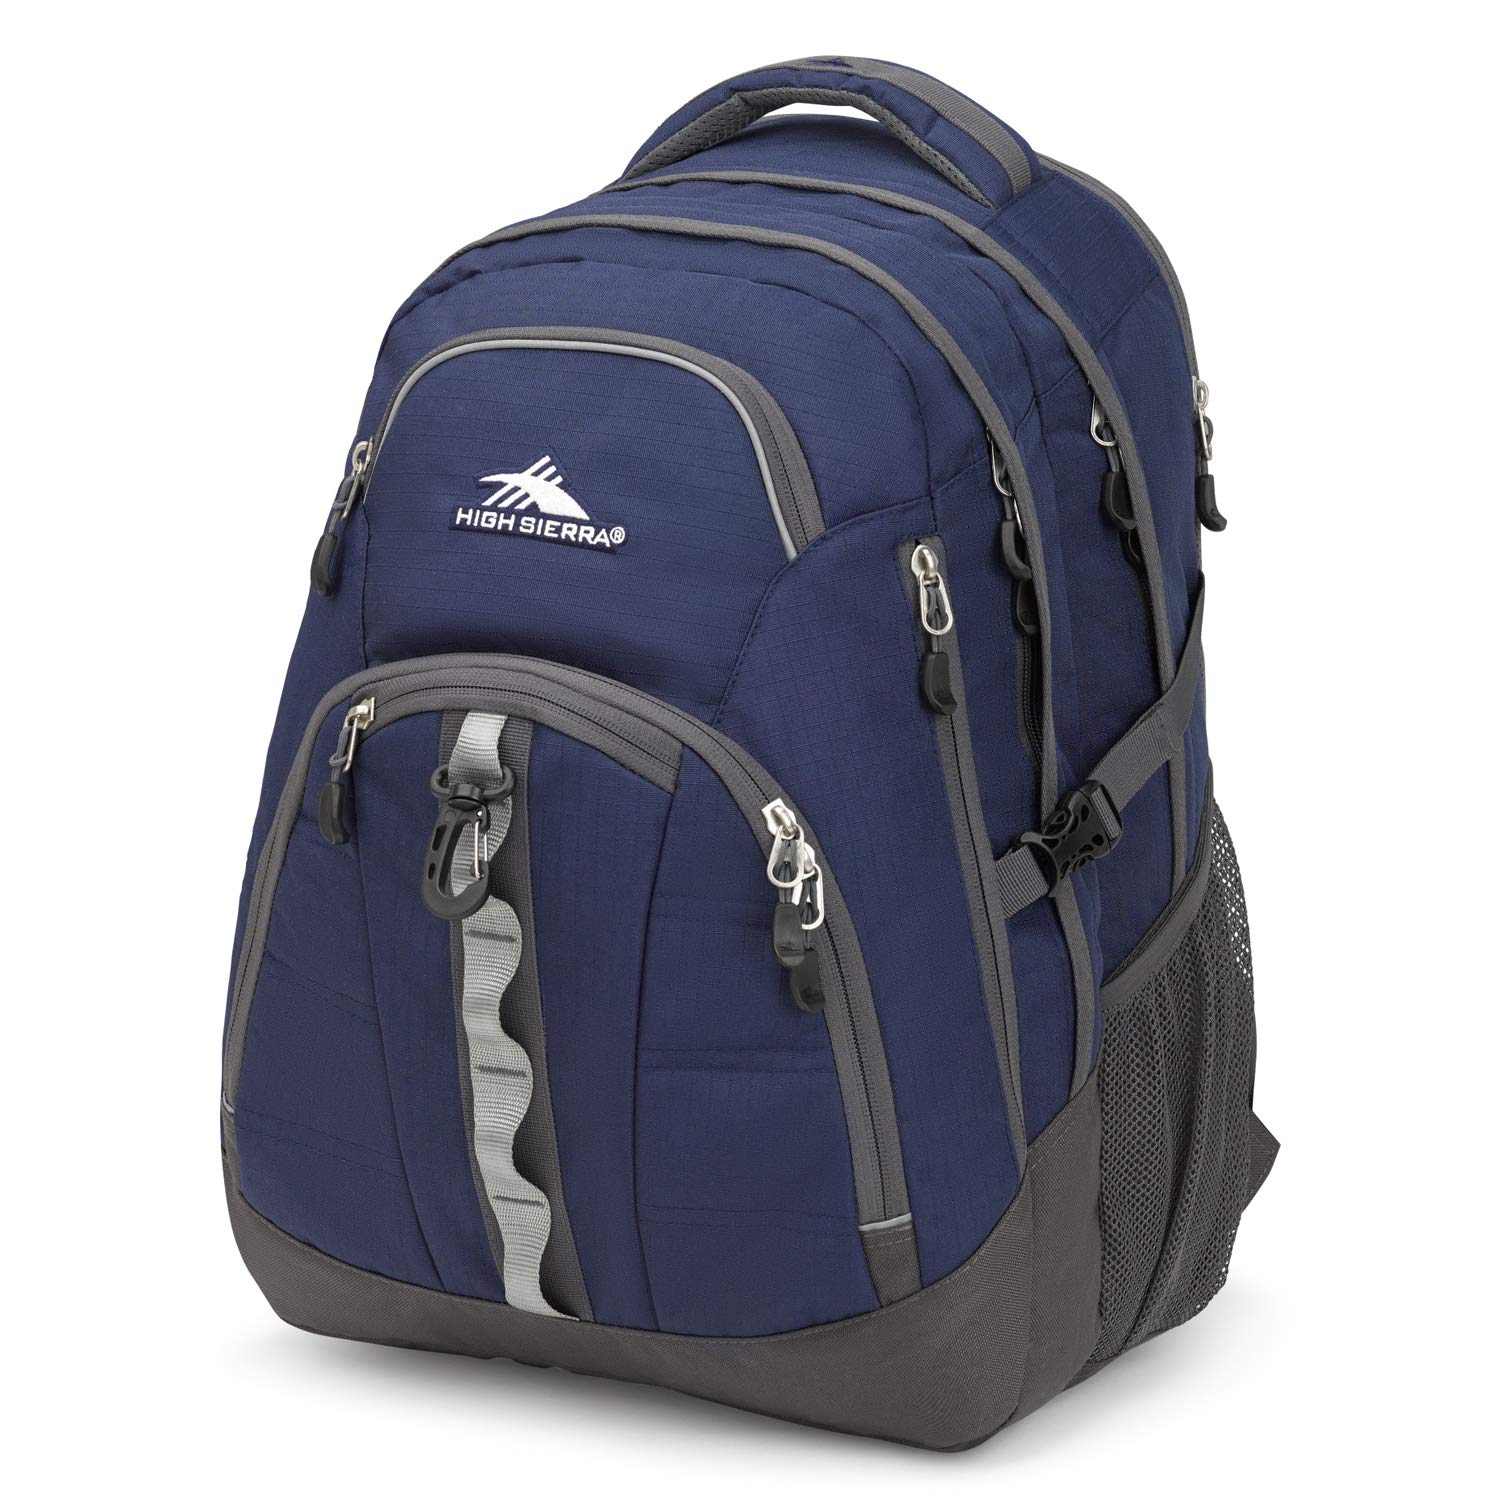 High Sierra Access 2.0 Laptop Backpack – 15-inch Laptop Backpack